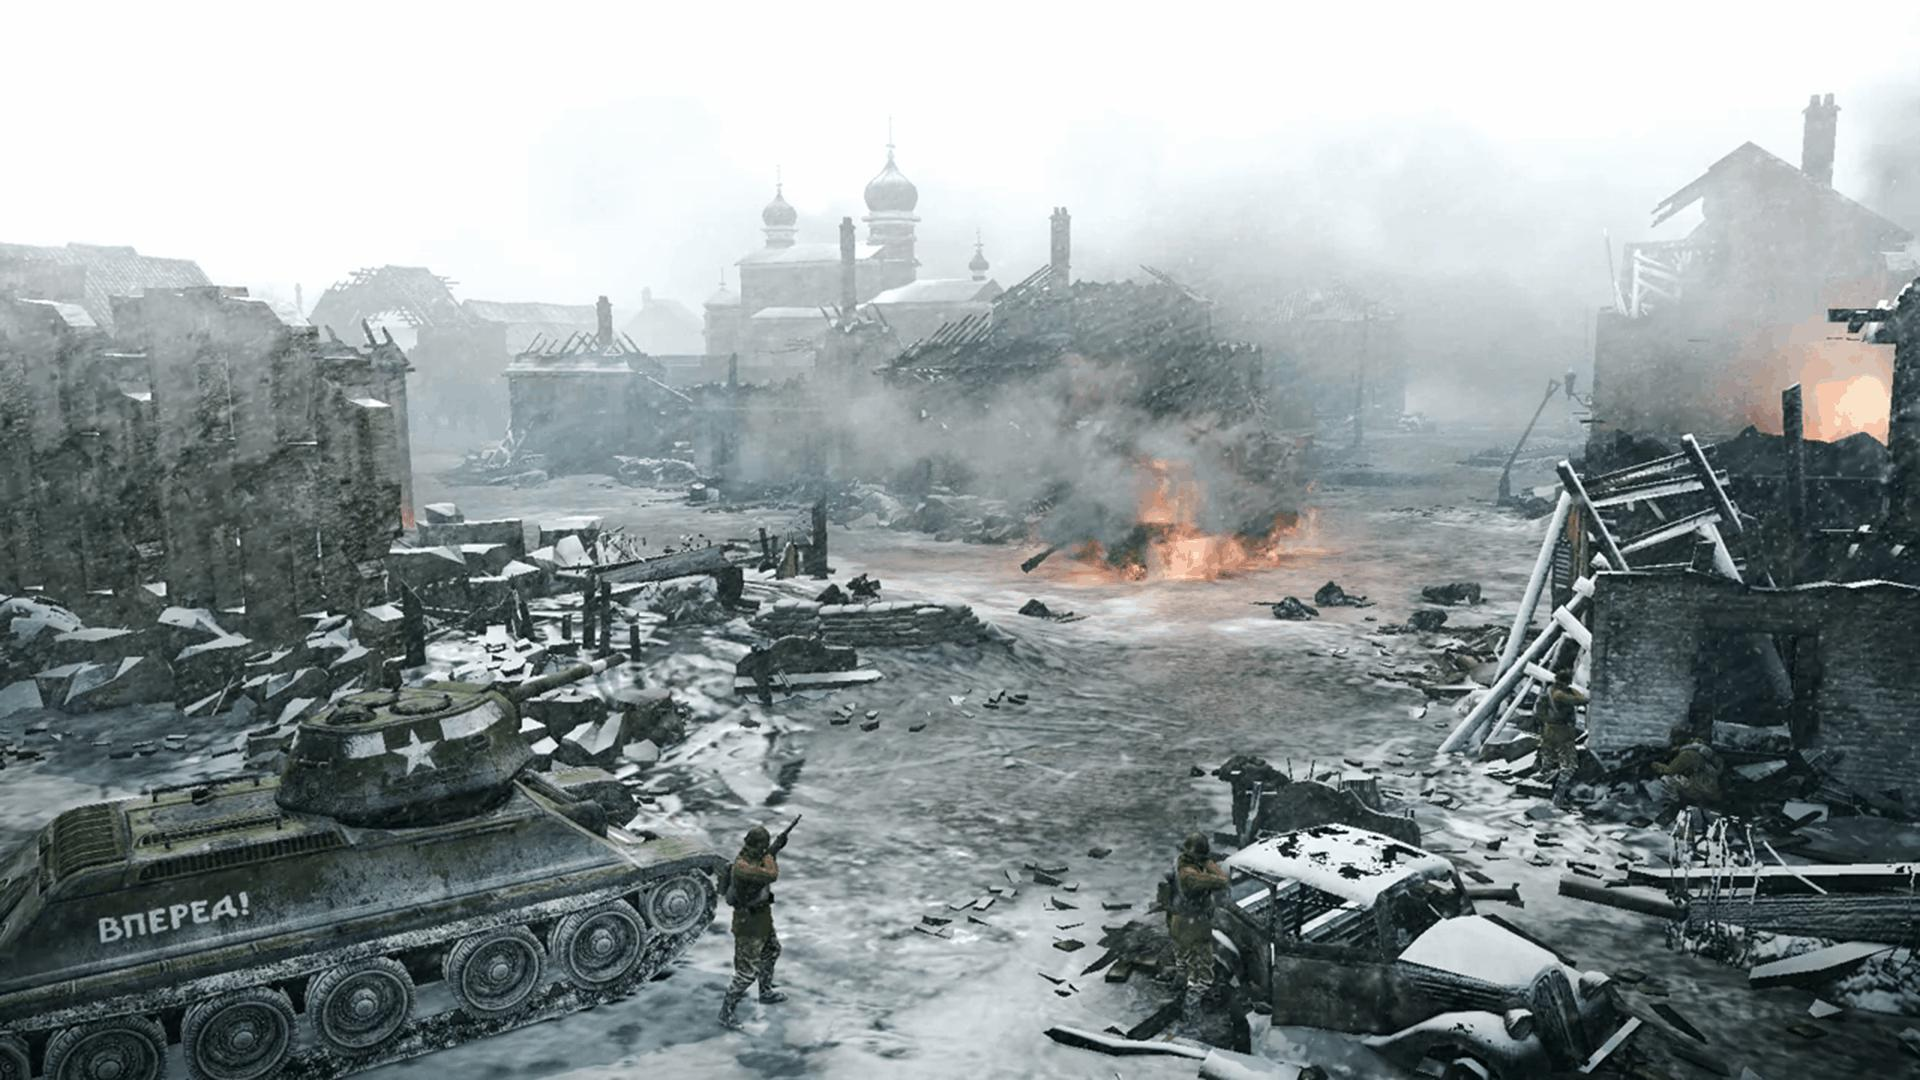 Wallpapers fond d 39 ecran pour company of heroes 2 pc 2013 for Fond ecrant pc